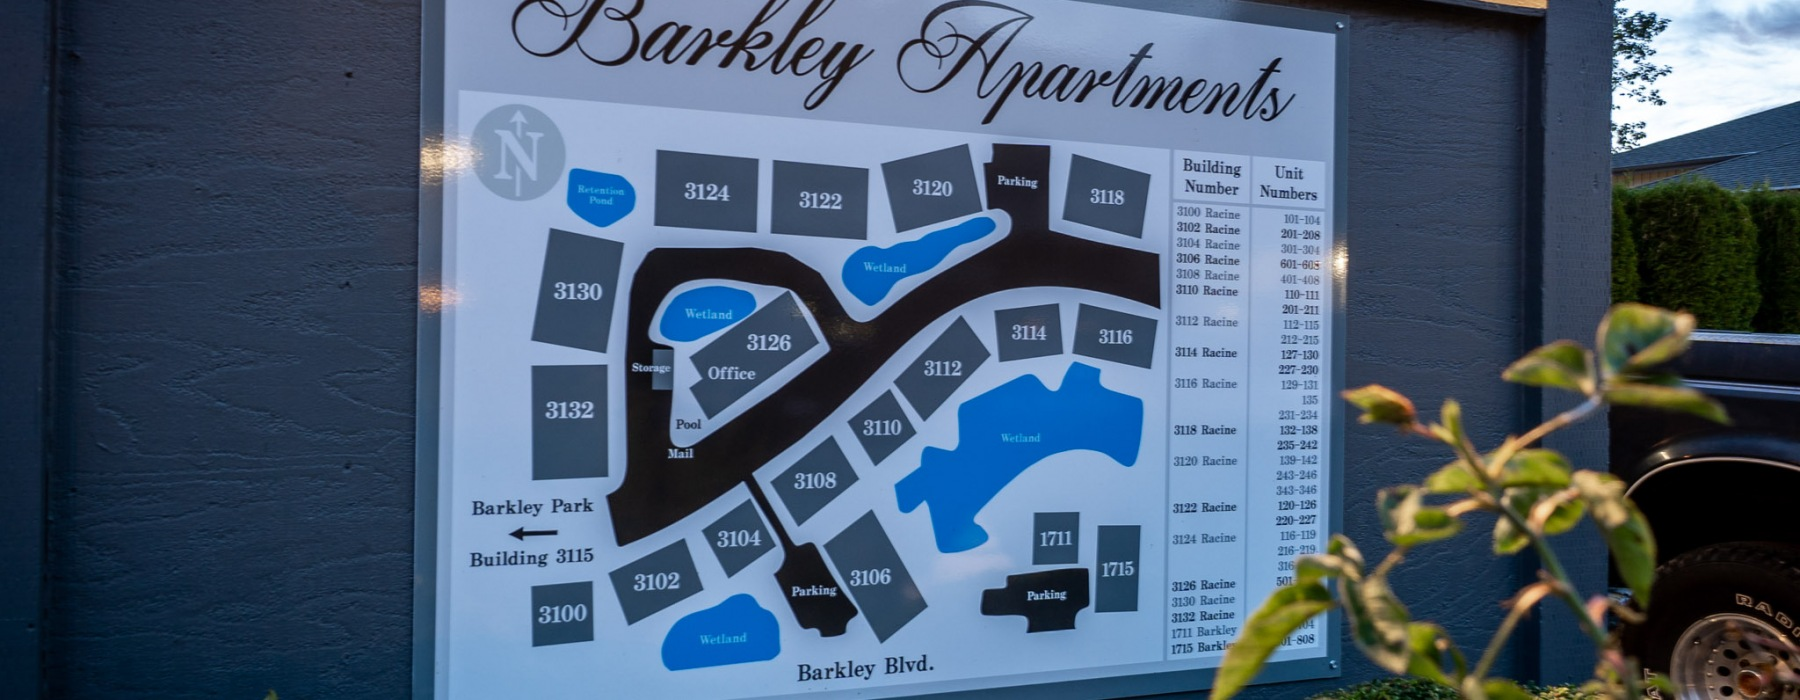 Barkley Map